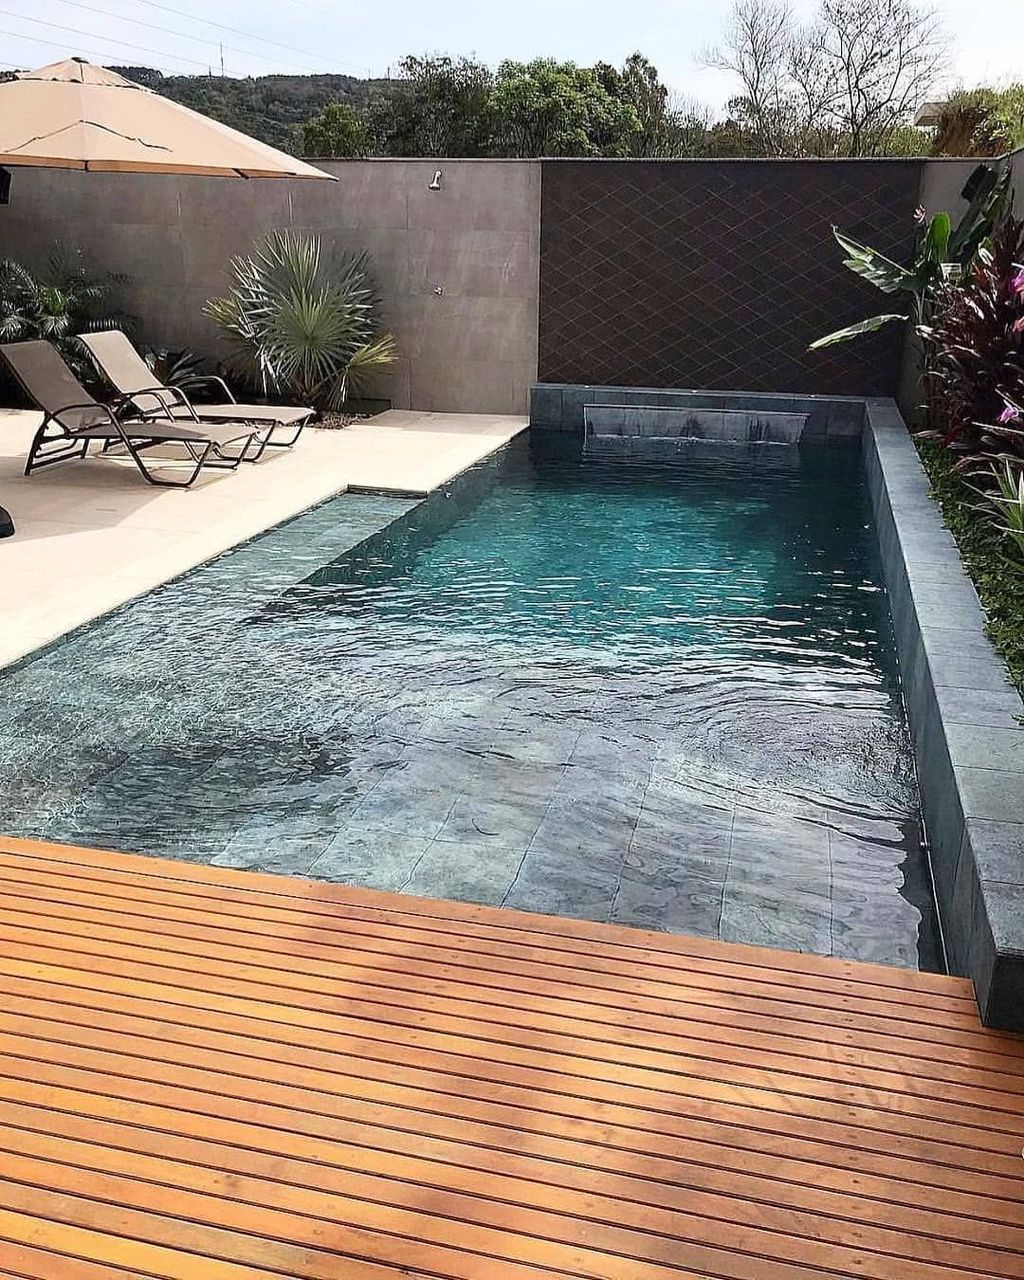 Awesome Ideas For Getting New Outside Swimming Pools Awesome Ideas Pools Swimming Luxury Swimming Pools Small Pool Design Cool Swimming Pools